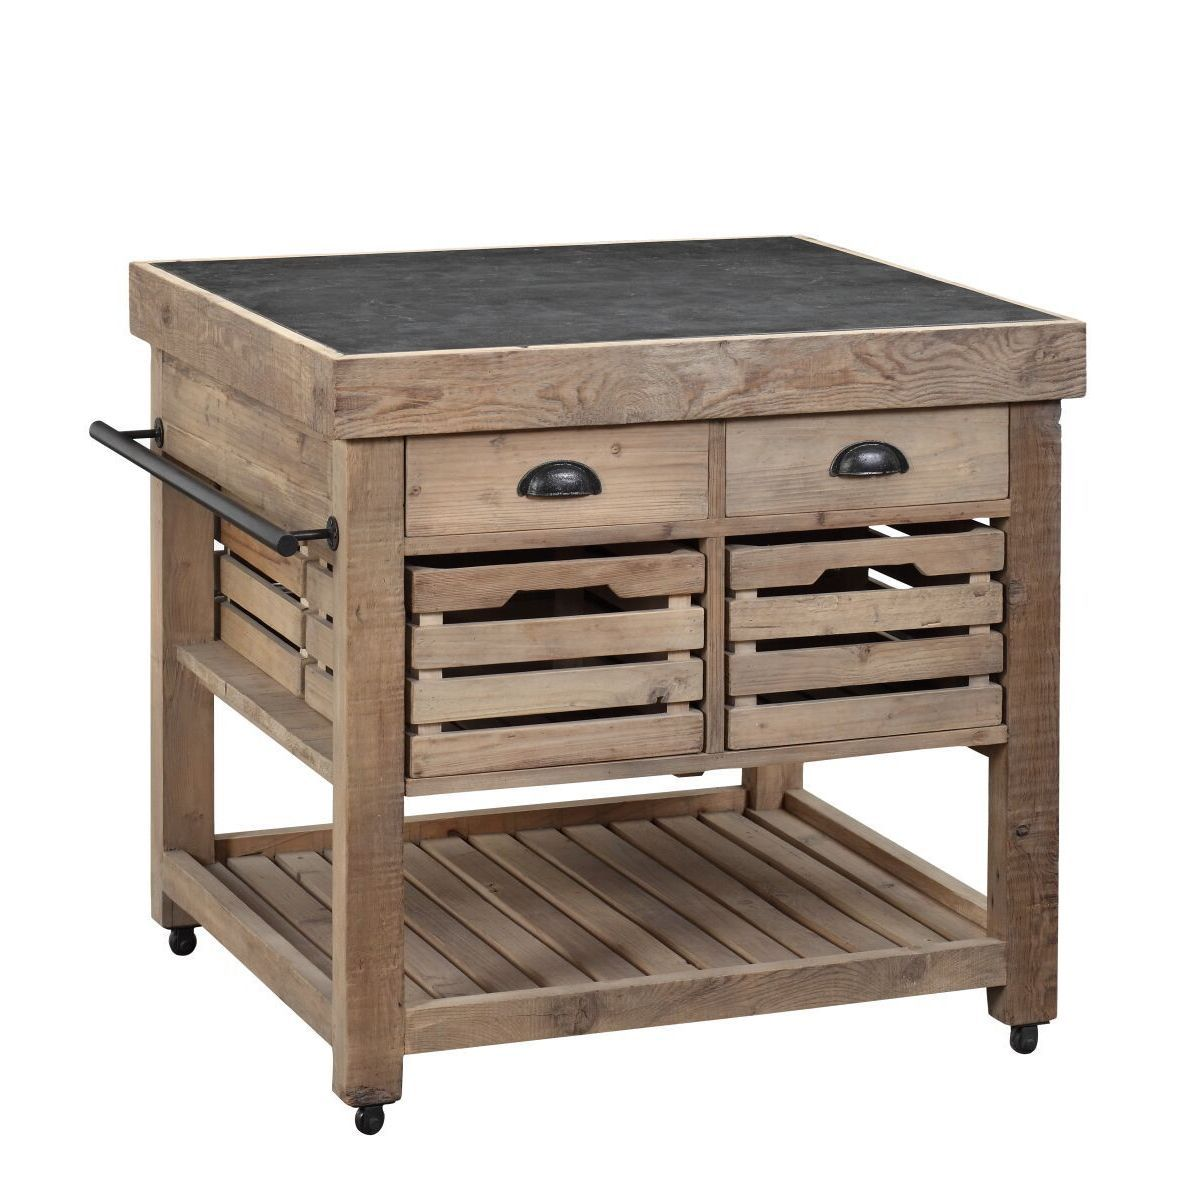 Home Designs Sorento Reclaimed Wood And Soapstone Kitchen Cart  # Muebles Sorento